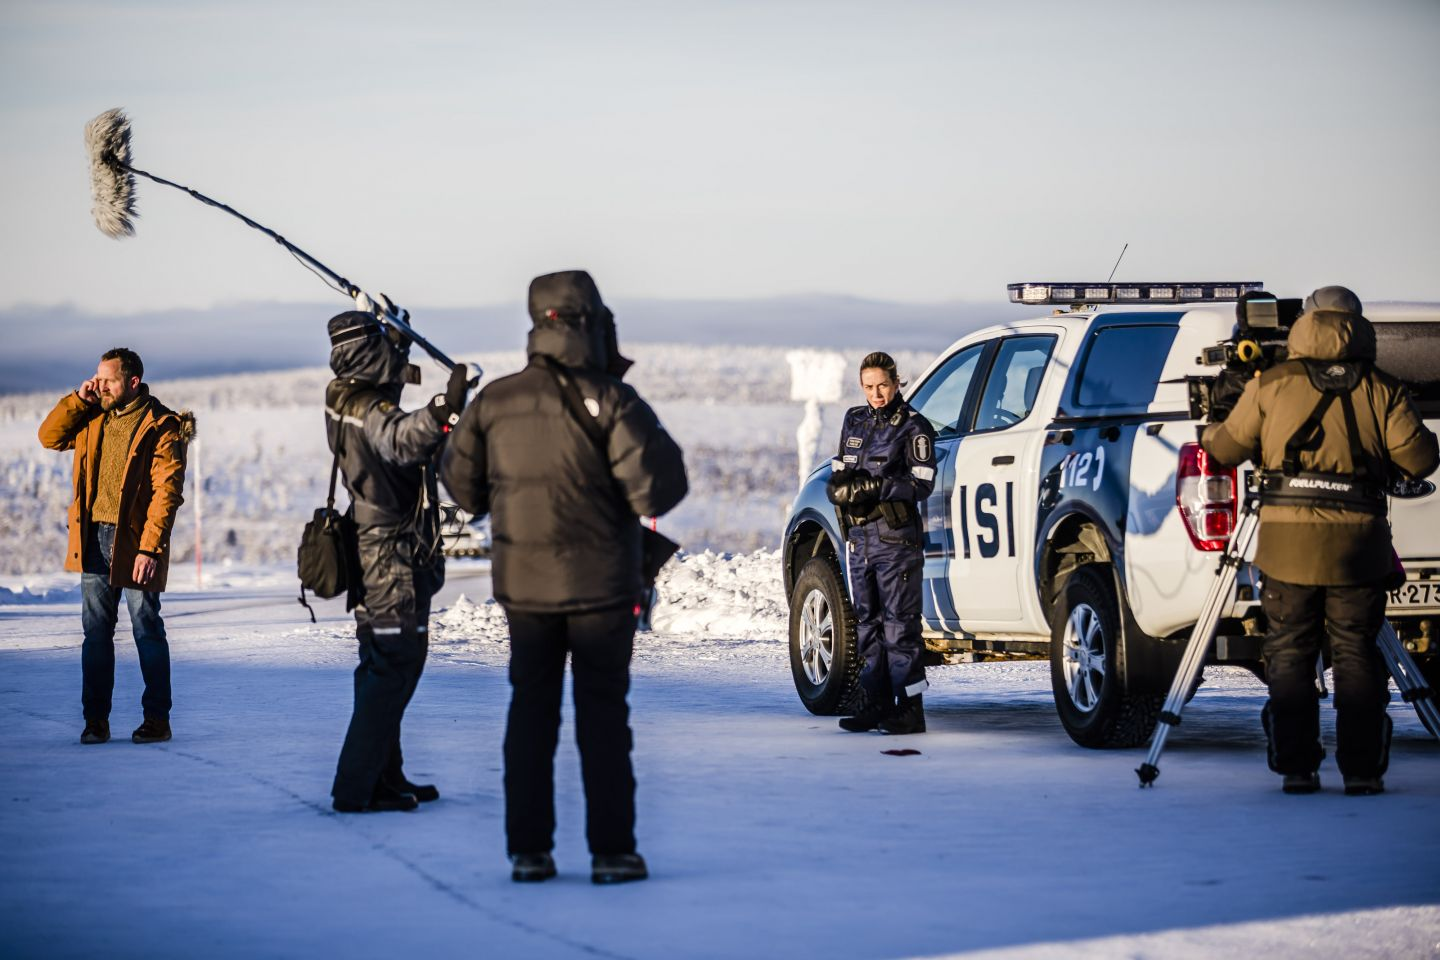 Behind the scenes on Arctic Circle, filmed in northernmost Finland